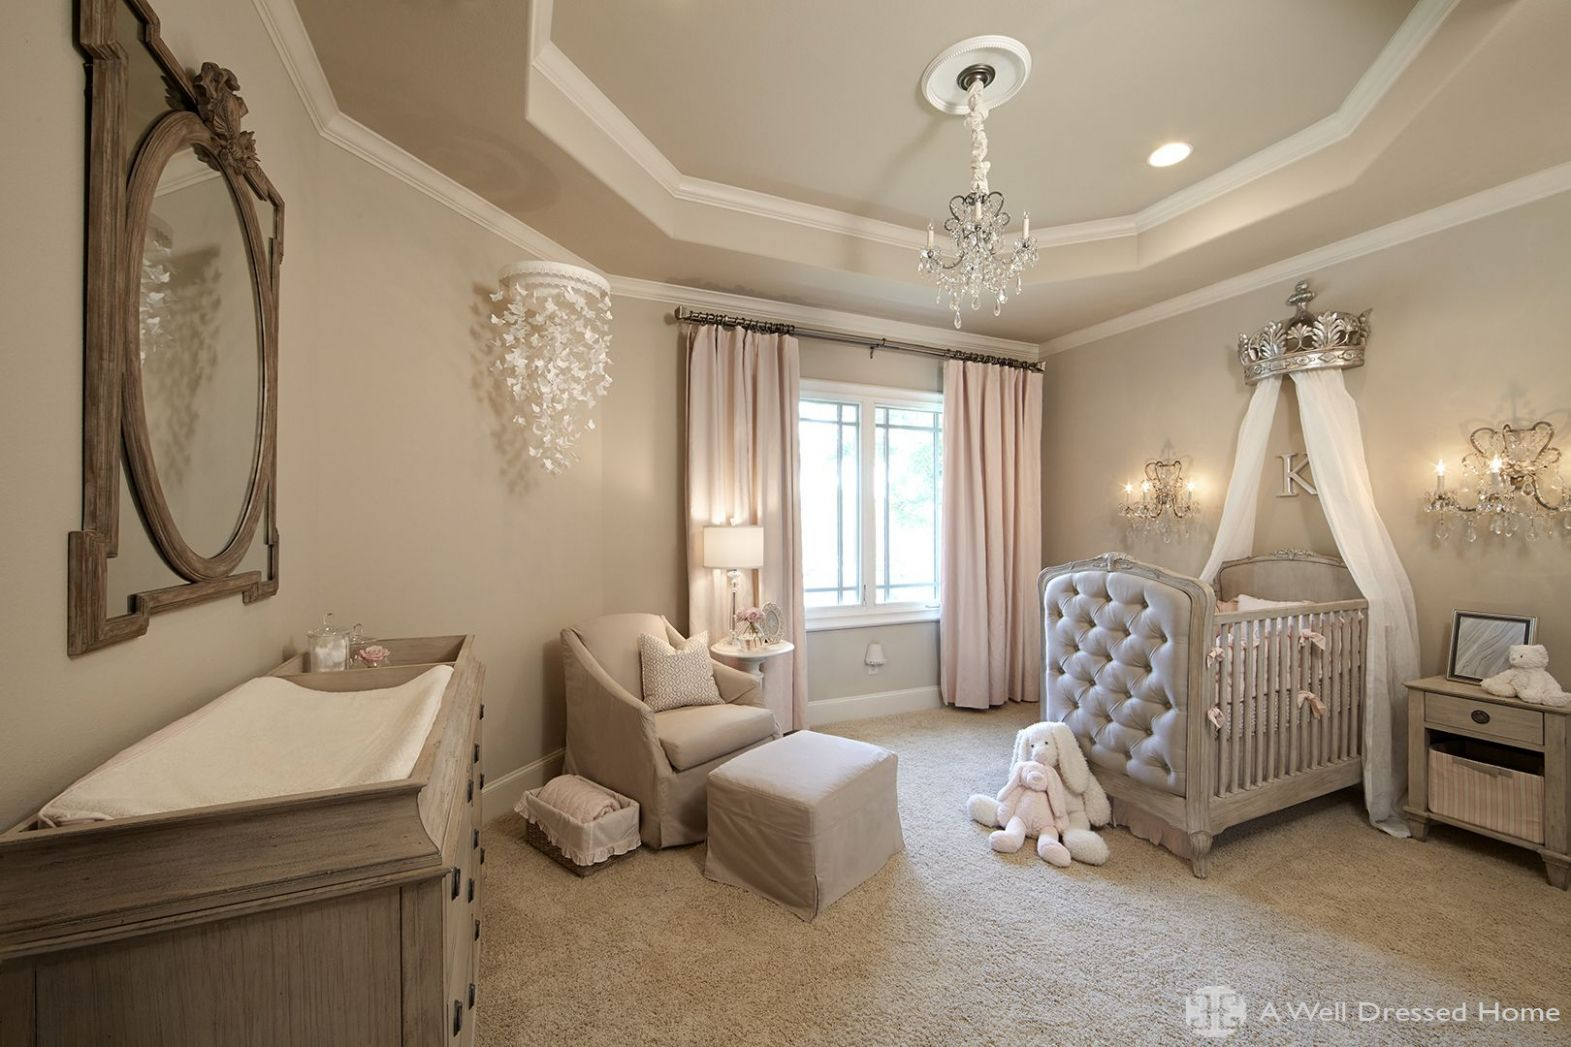 About | Baby room decor, Girl room, Baby bedroom - baby room furniture ideas